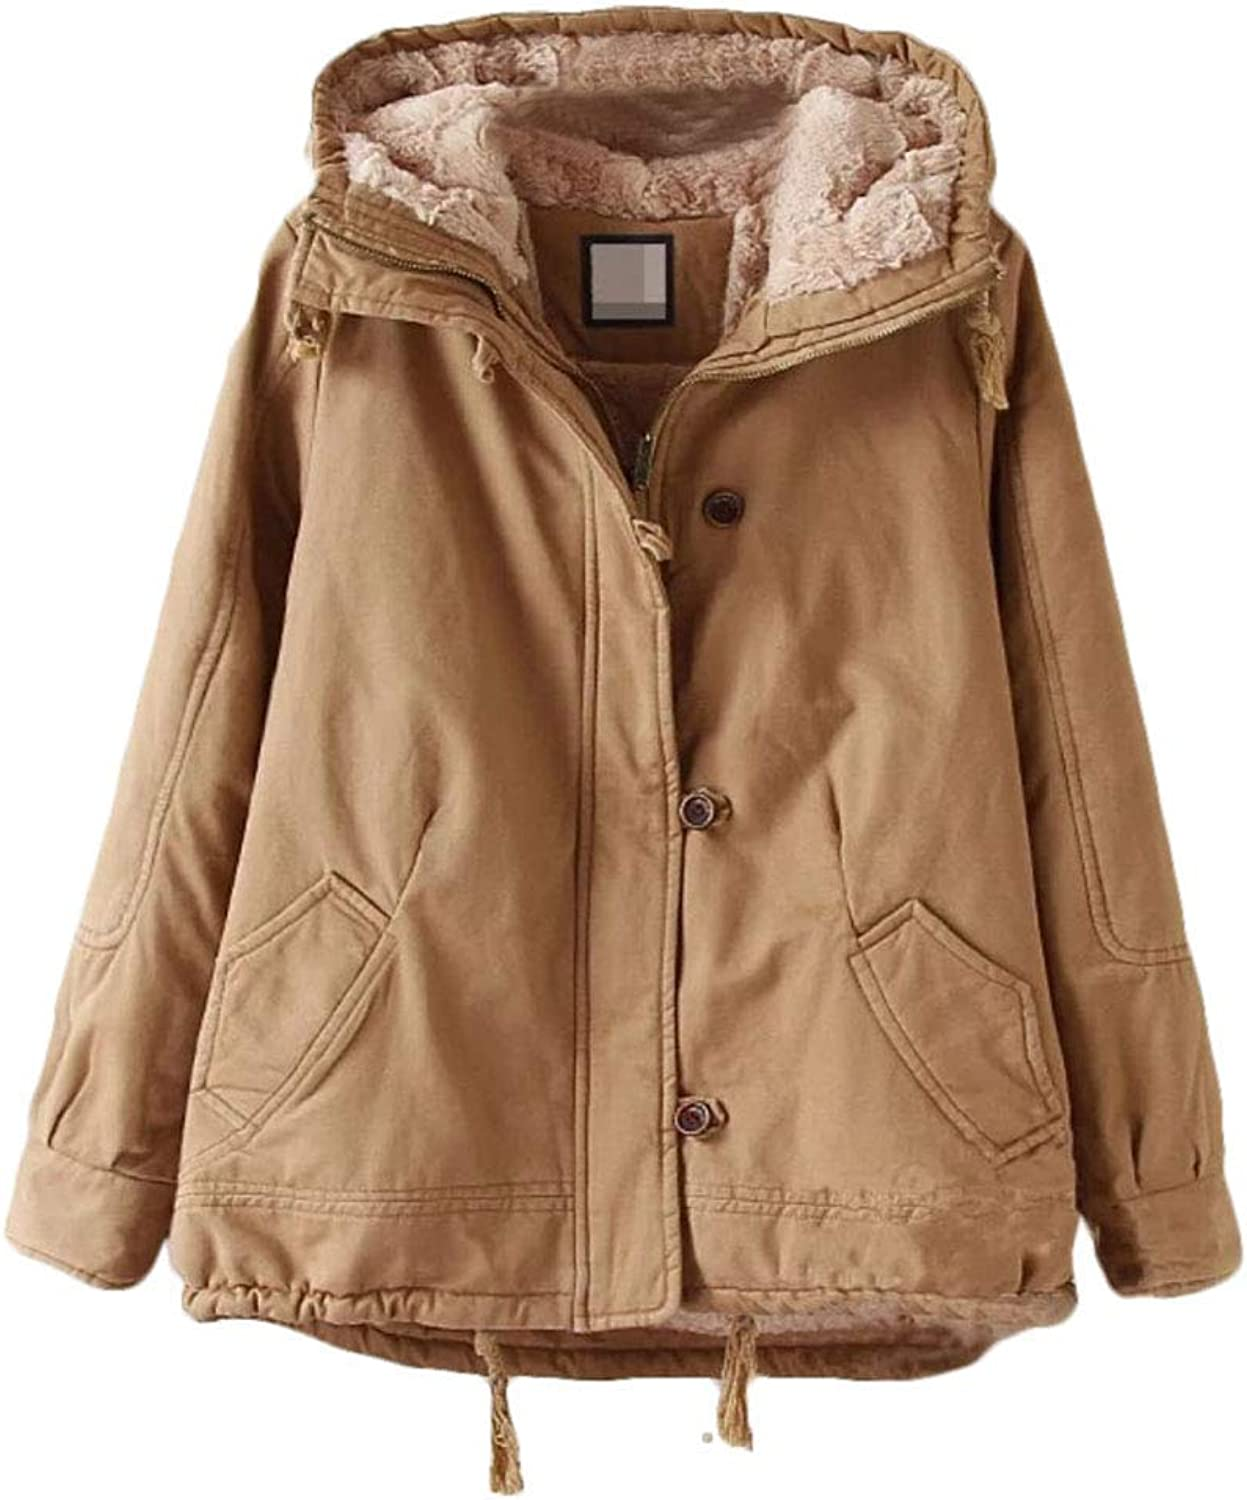 BU2H Women Autumn Classic Solid Anorak Sherpa Faux Fur Lined Parka Jacket